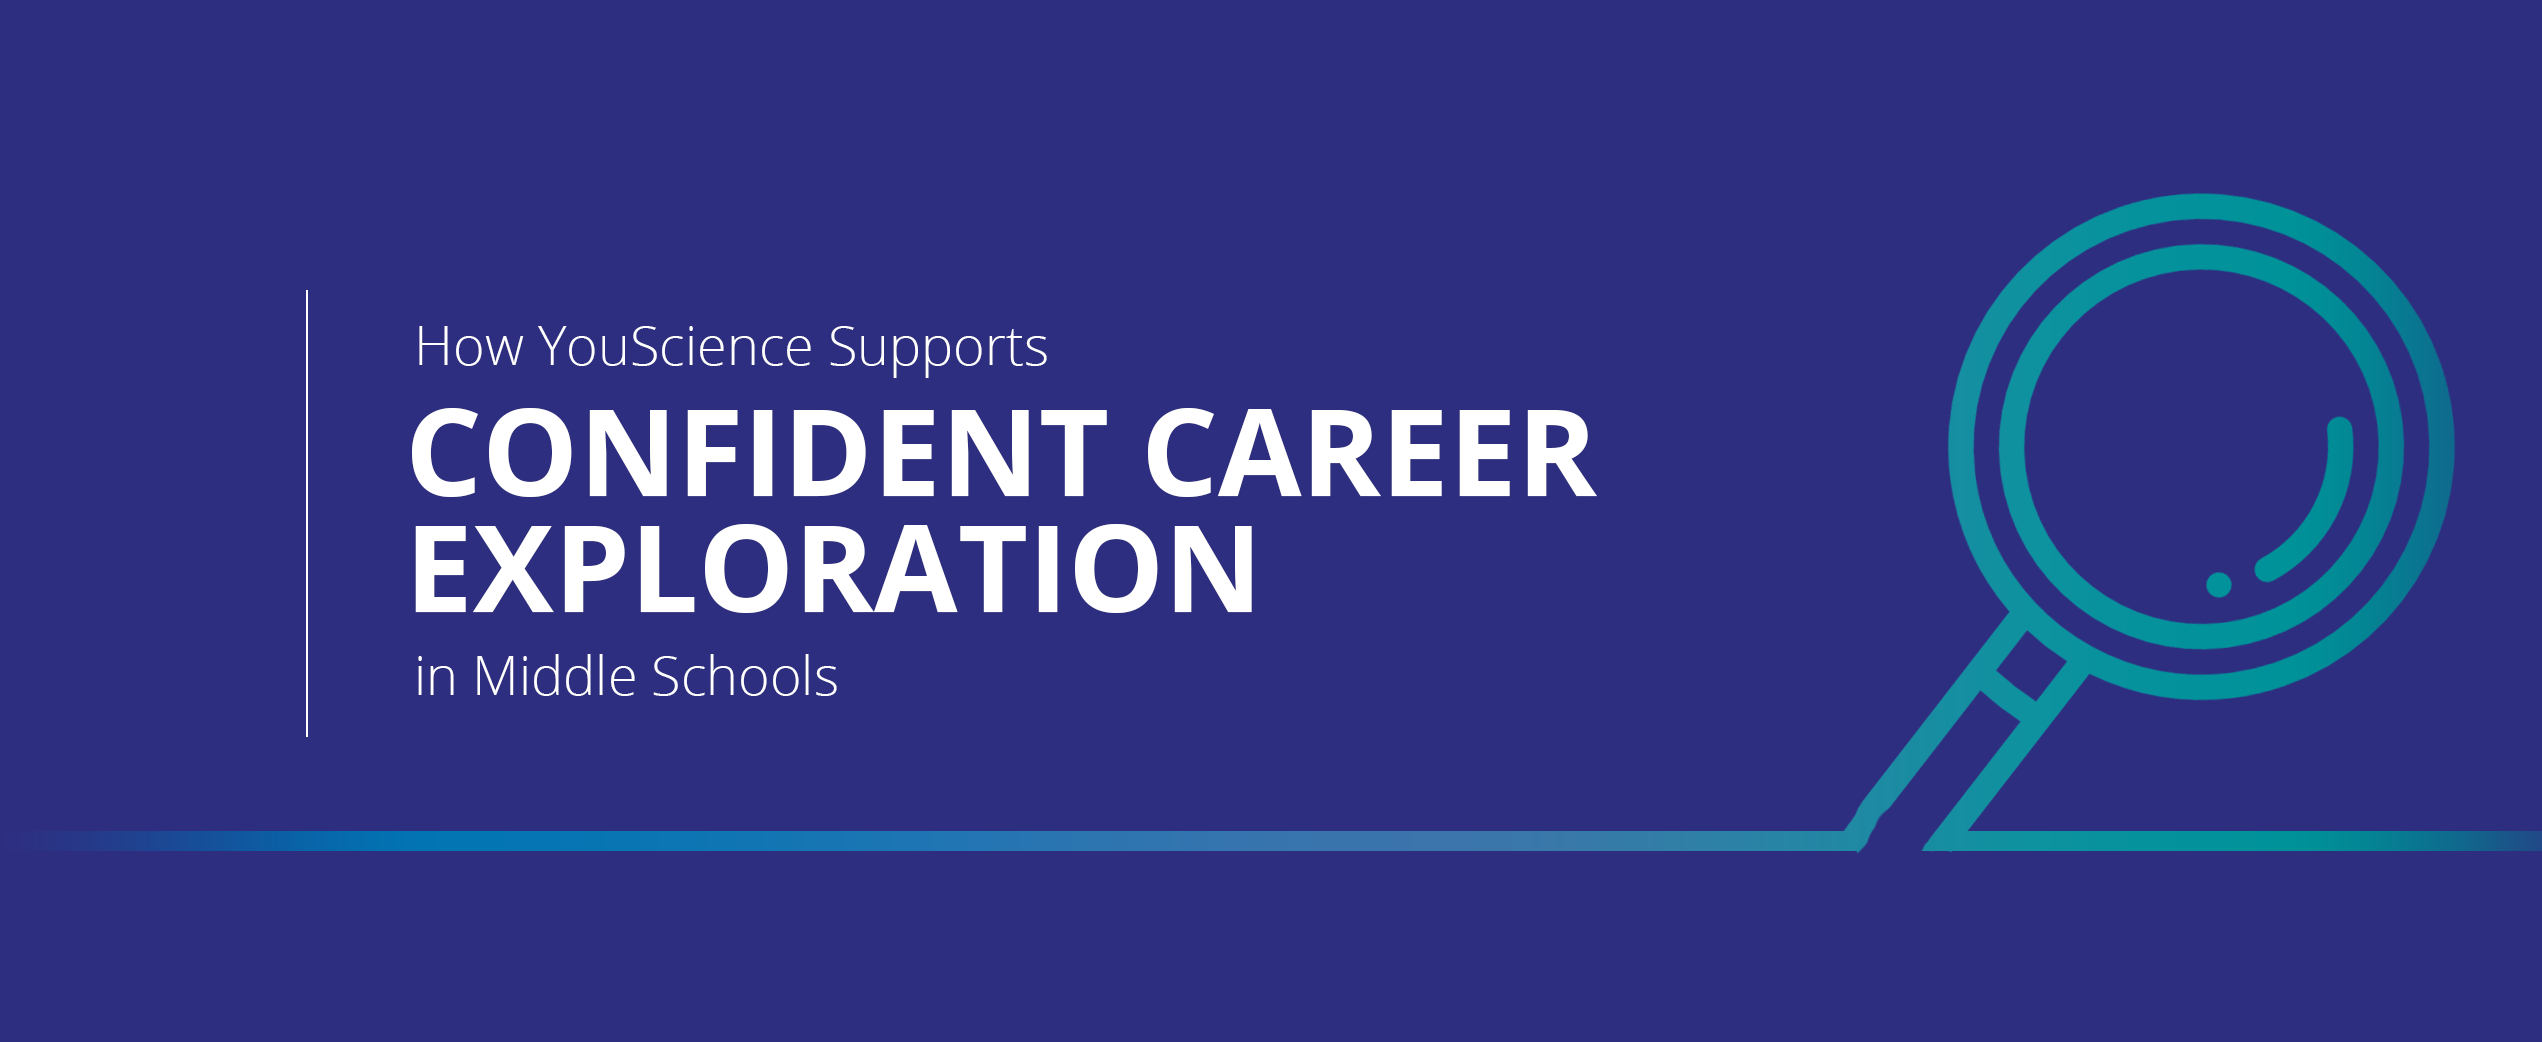 How YouScience Supports Confident Career Exploration in Middle School